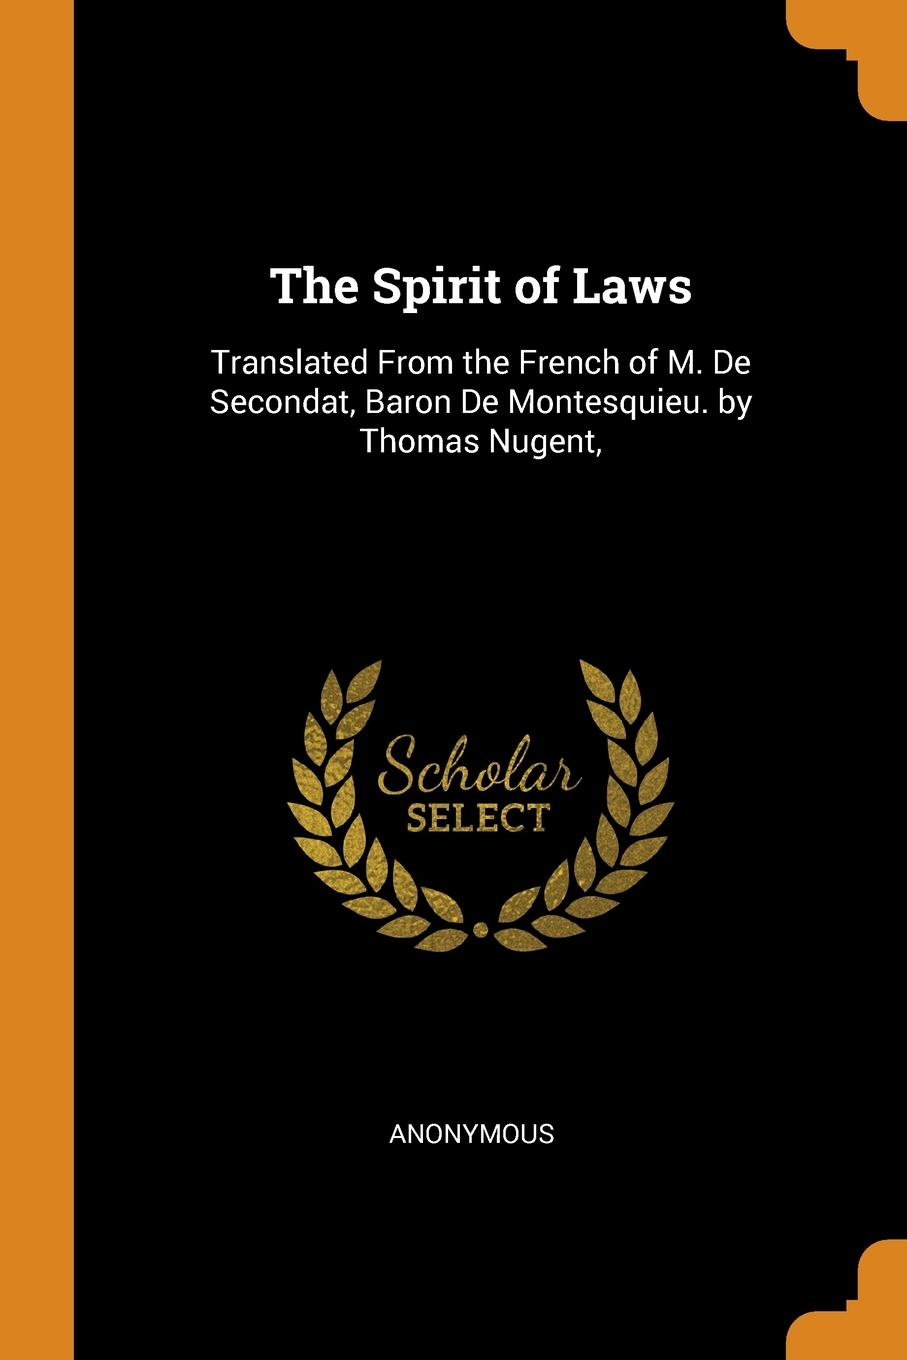 The Spirit of Laws. Translated From the French of M. De Secondat, Baron De Montesquieu. by Thomas Nugent,. M. l`abb? Trochon